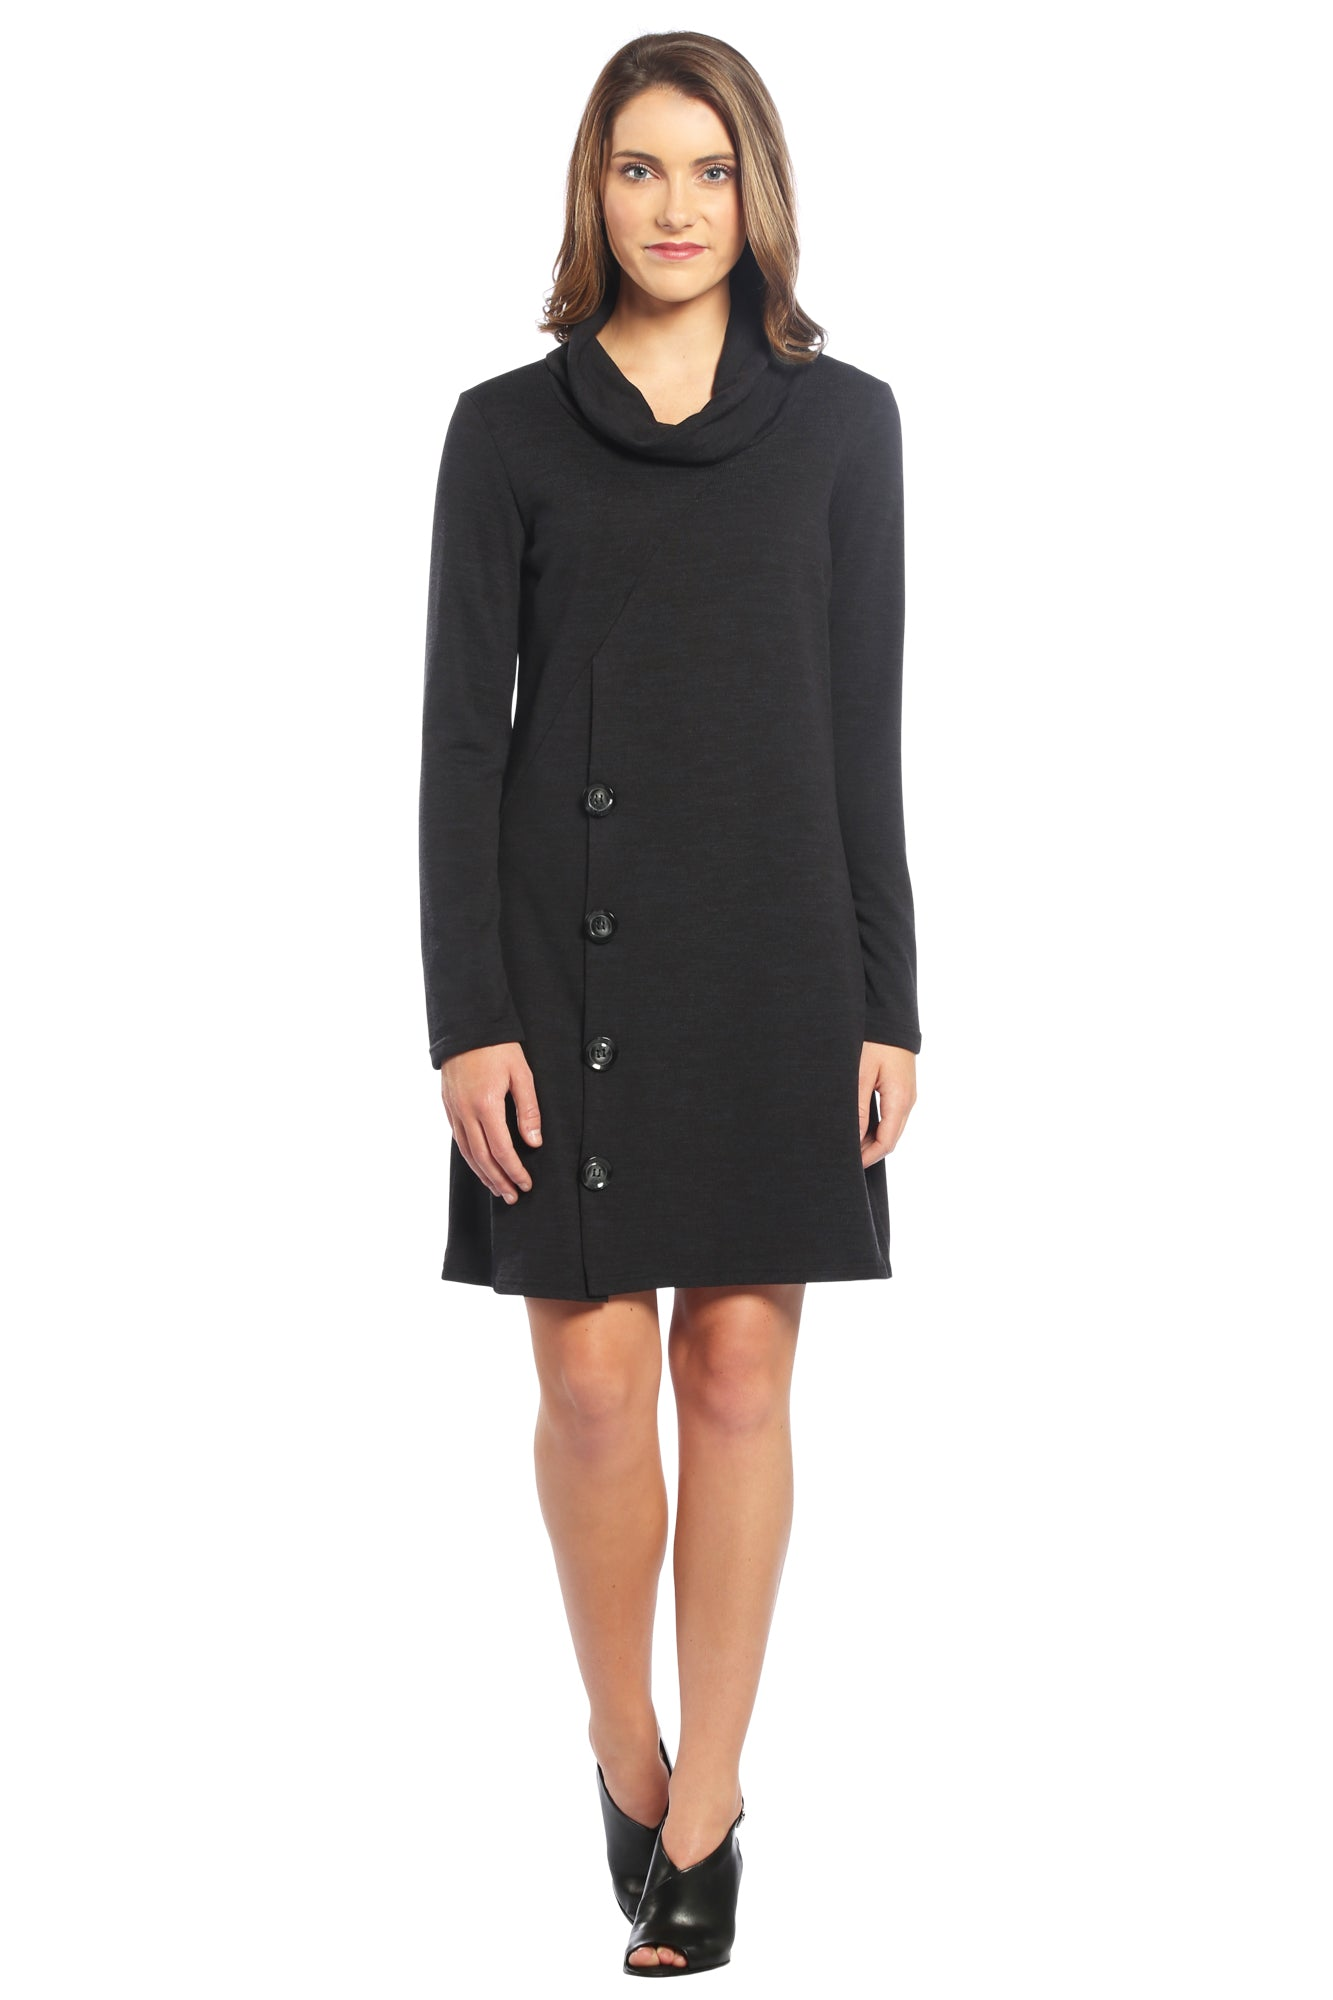 Black Sweater Dress LBD